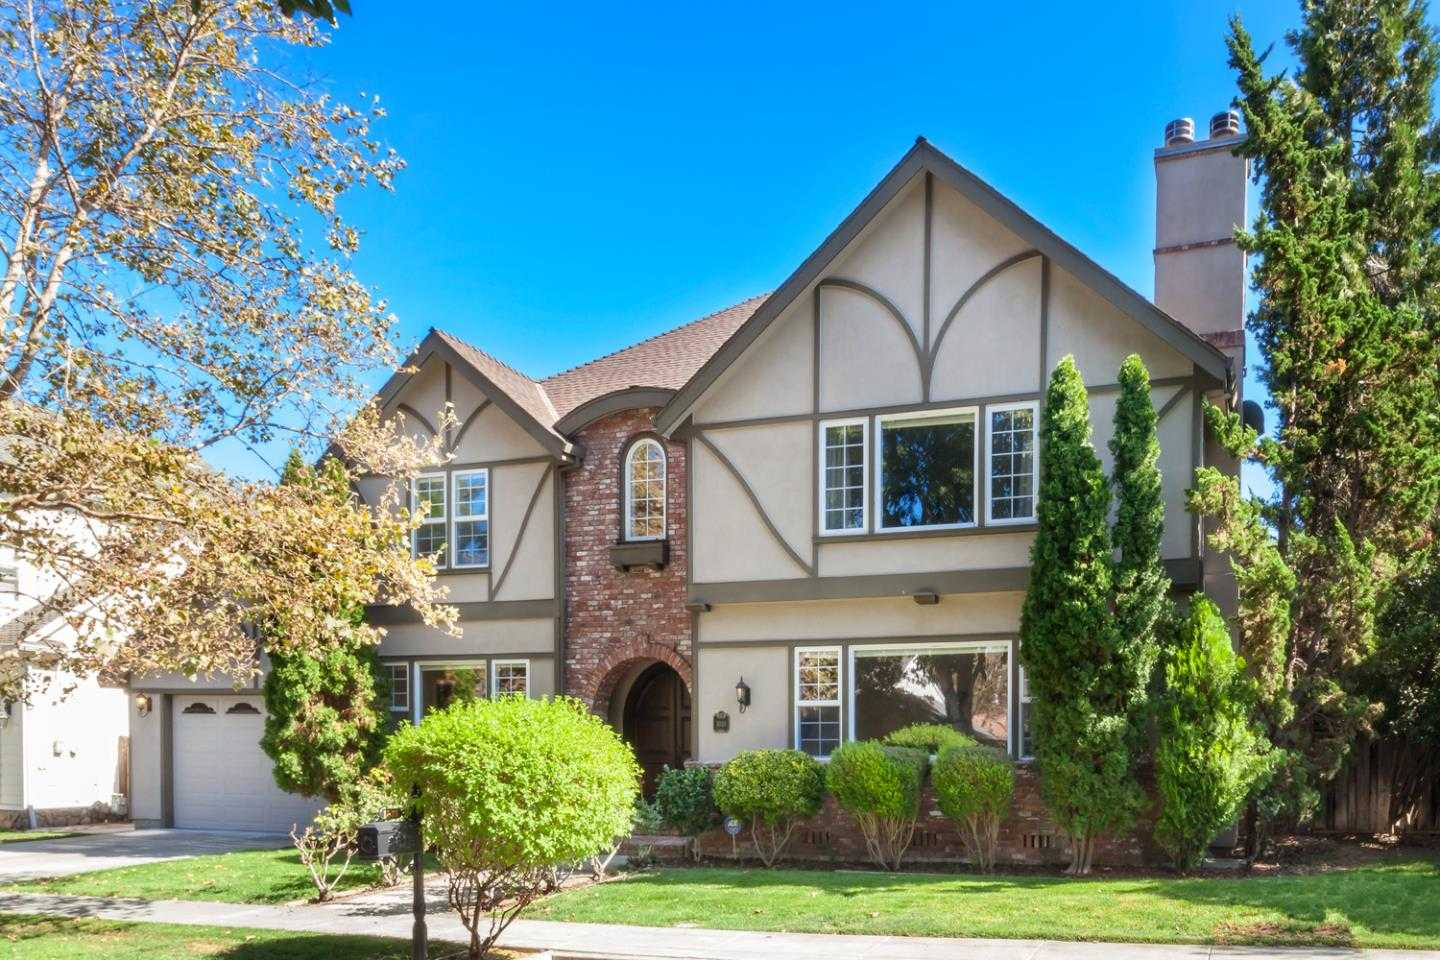 $2,288,888 - 5Br/3Ba -  for Sale in San Jose